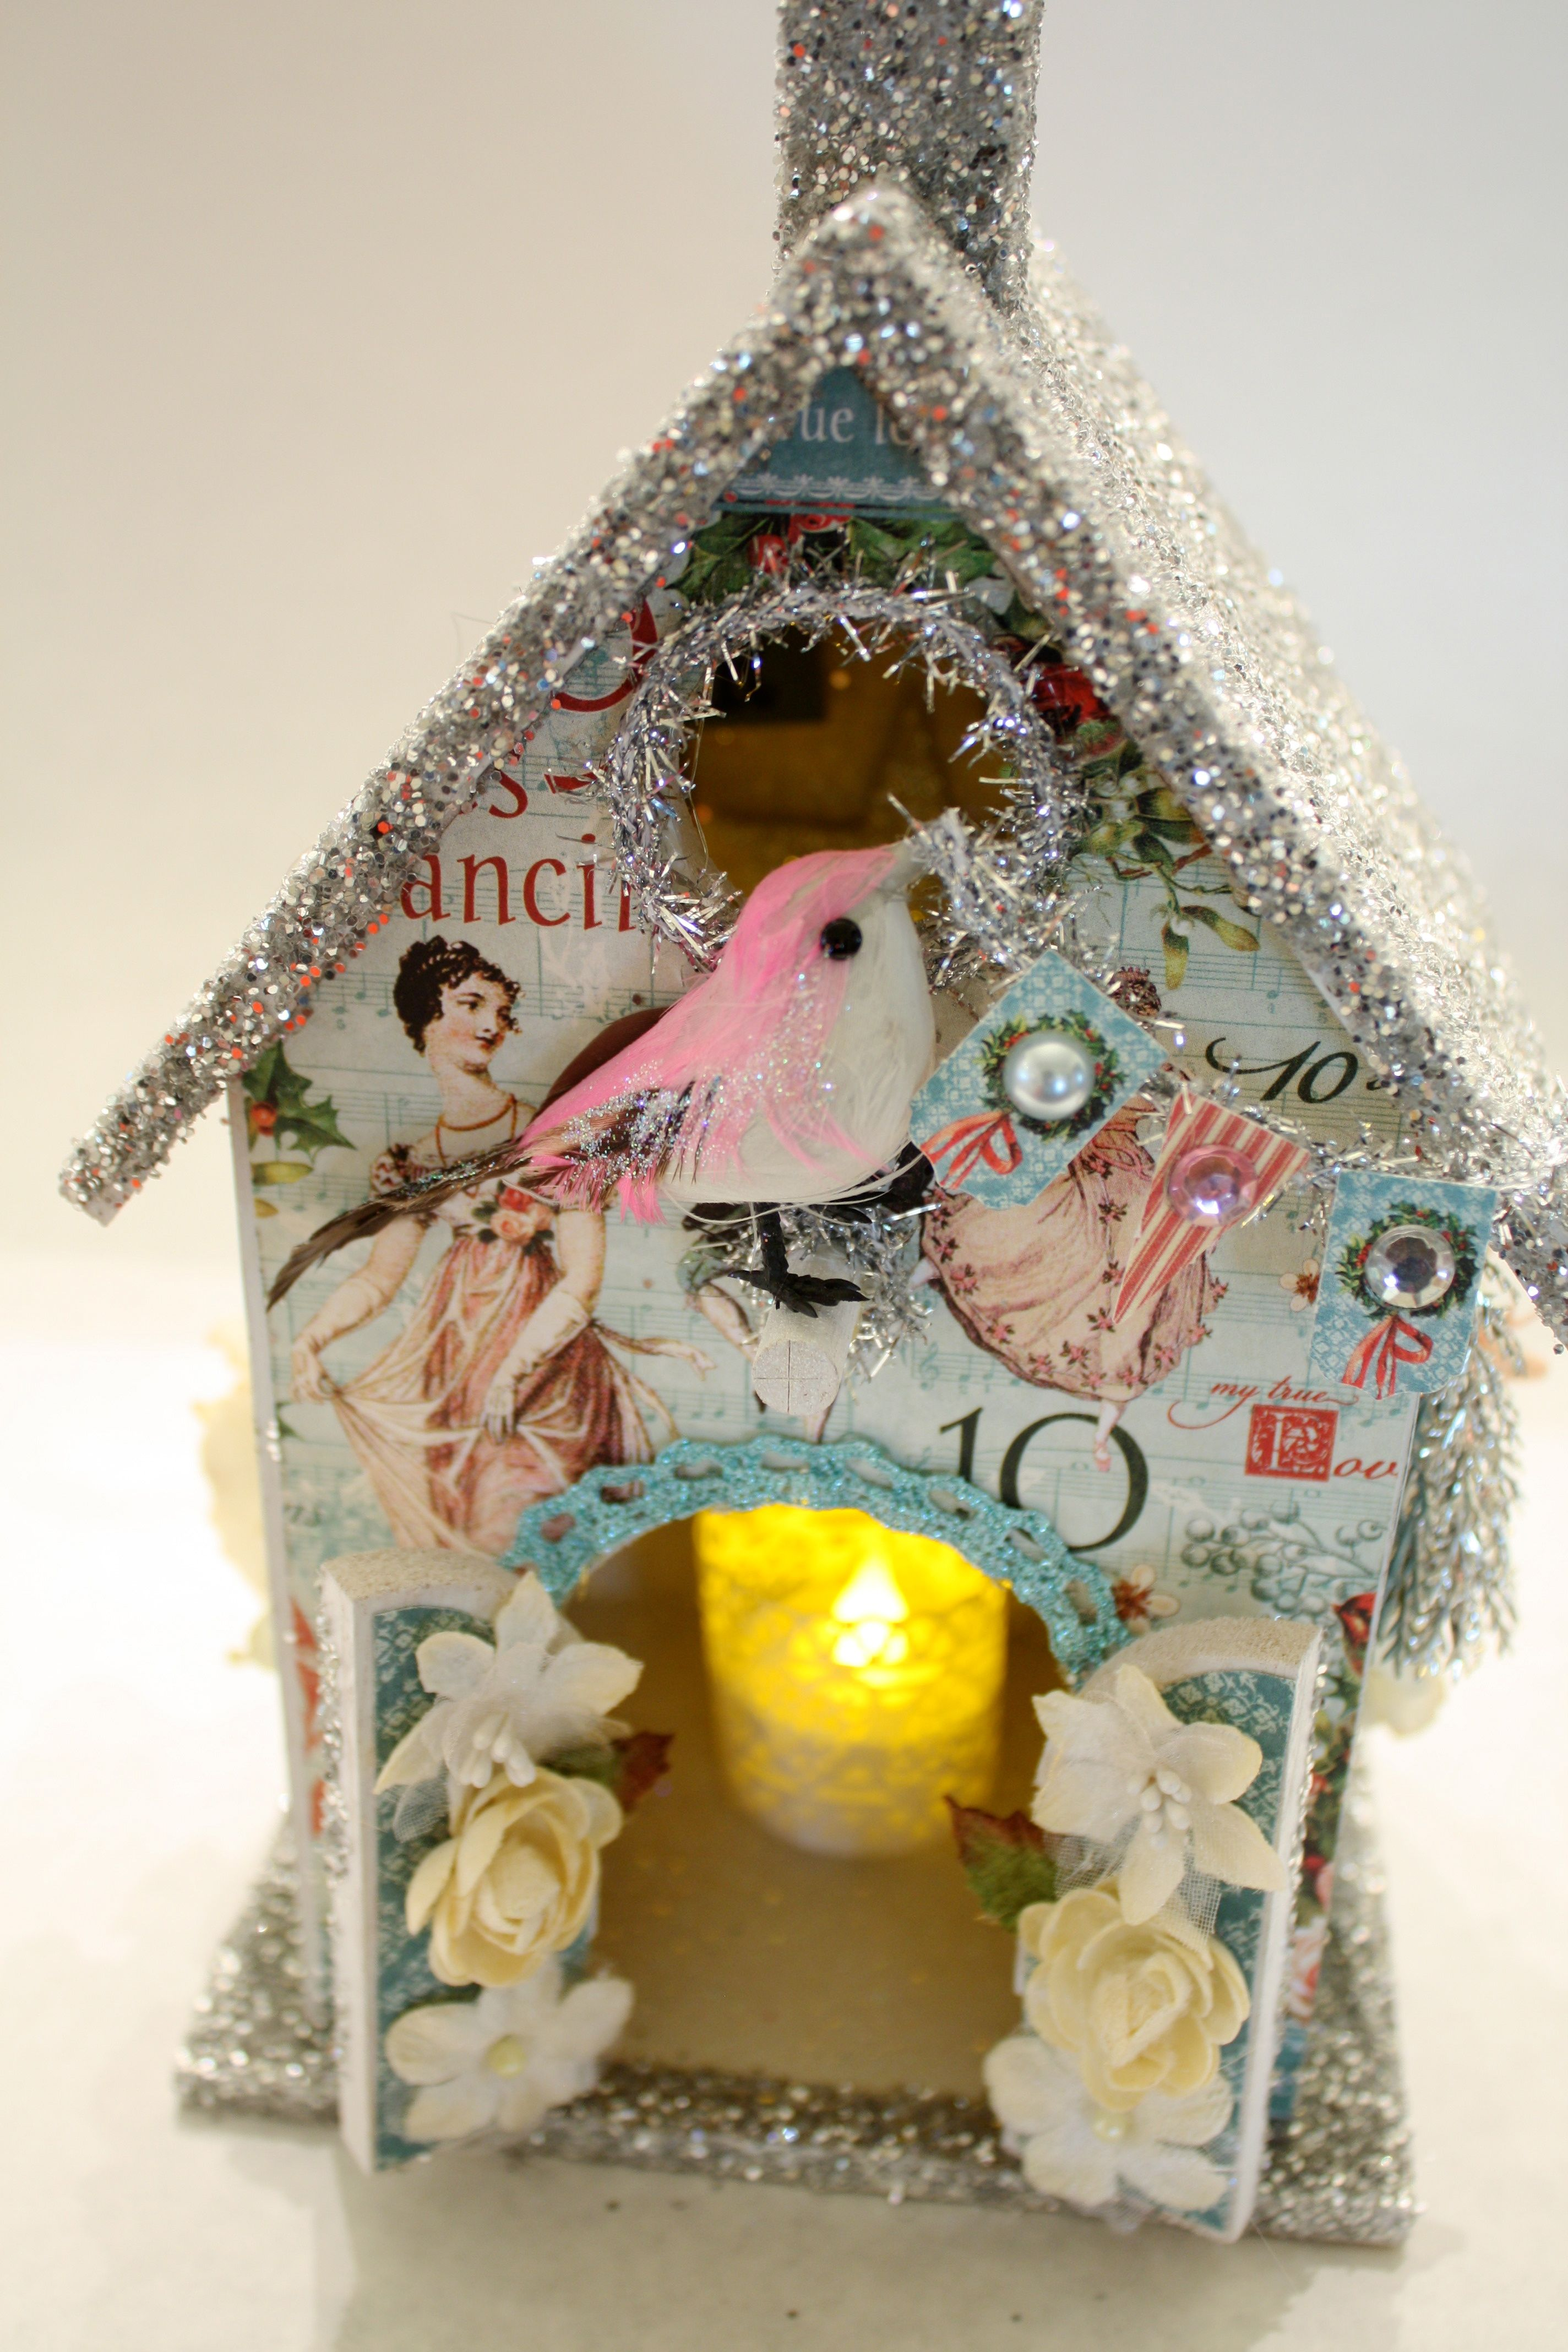 Christmas House By Petaloo Dt Member Denise Hahn It Features